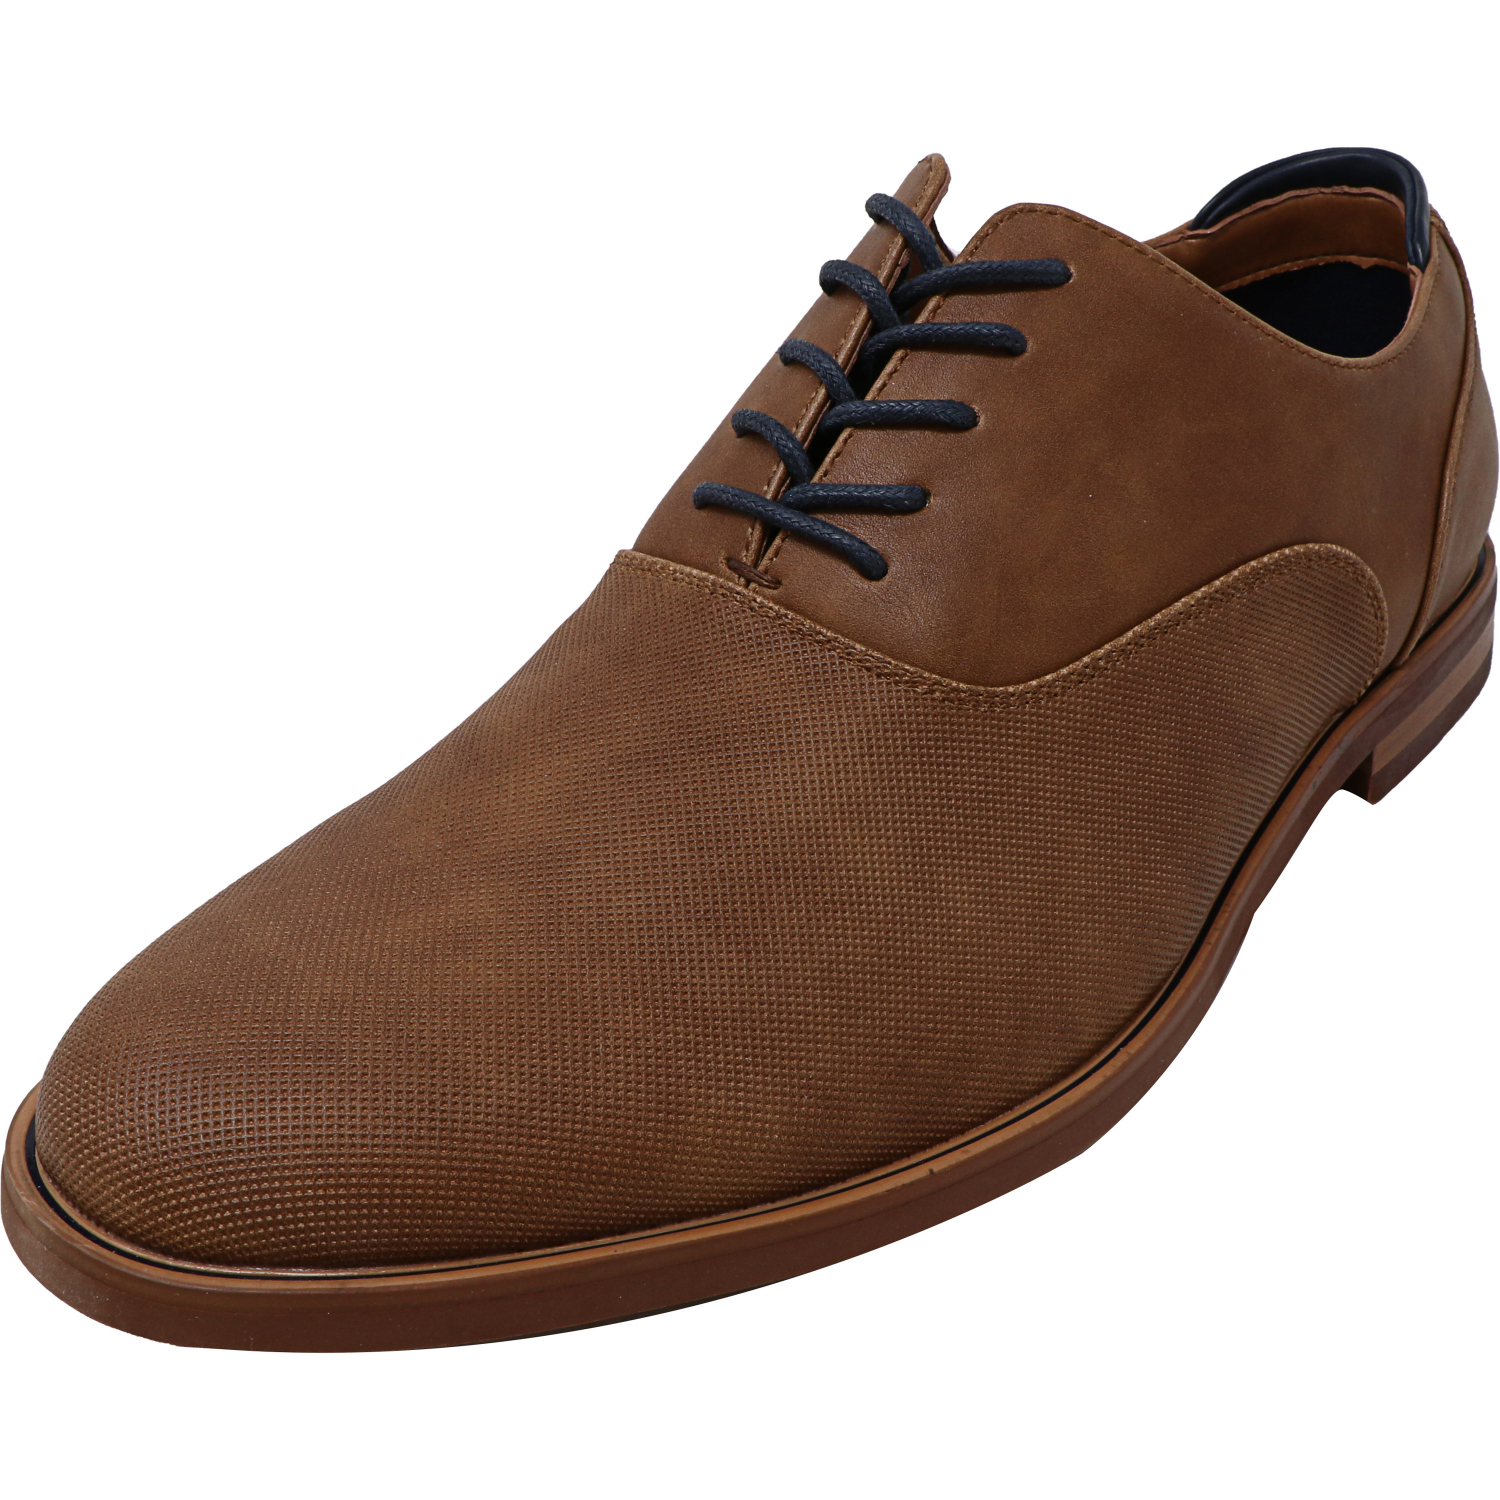 Call It Spring Men's Christo Light Brown Ankle-High Oxford - 11.5M